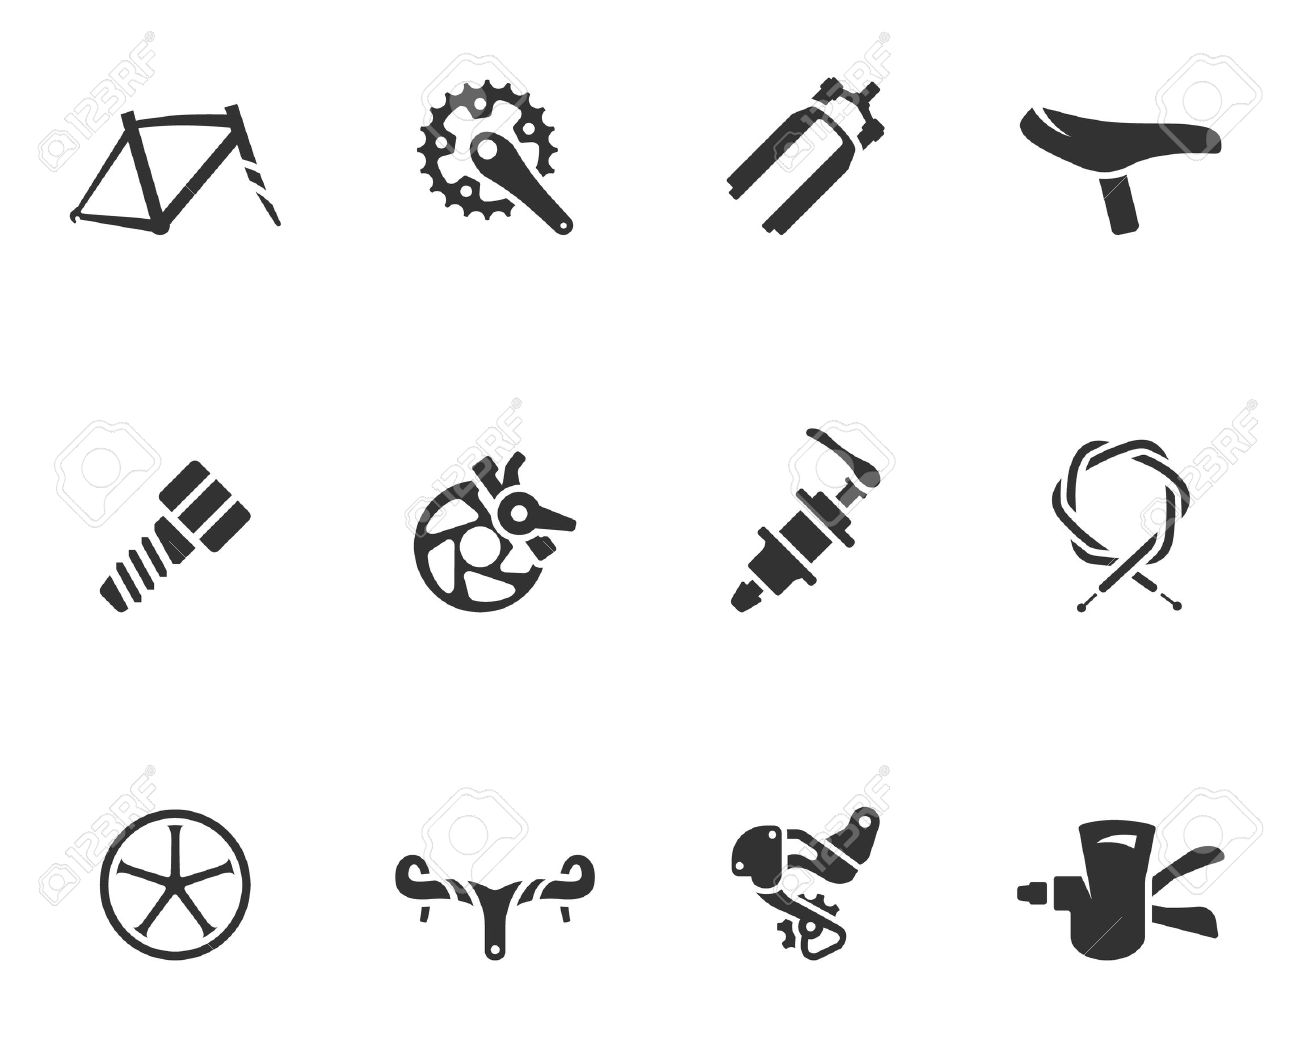 Bicycle Part Icons Series In Single Color Royalty Free Cliparts